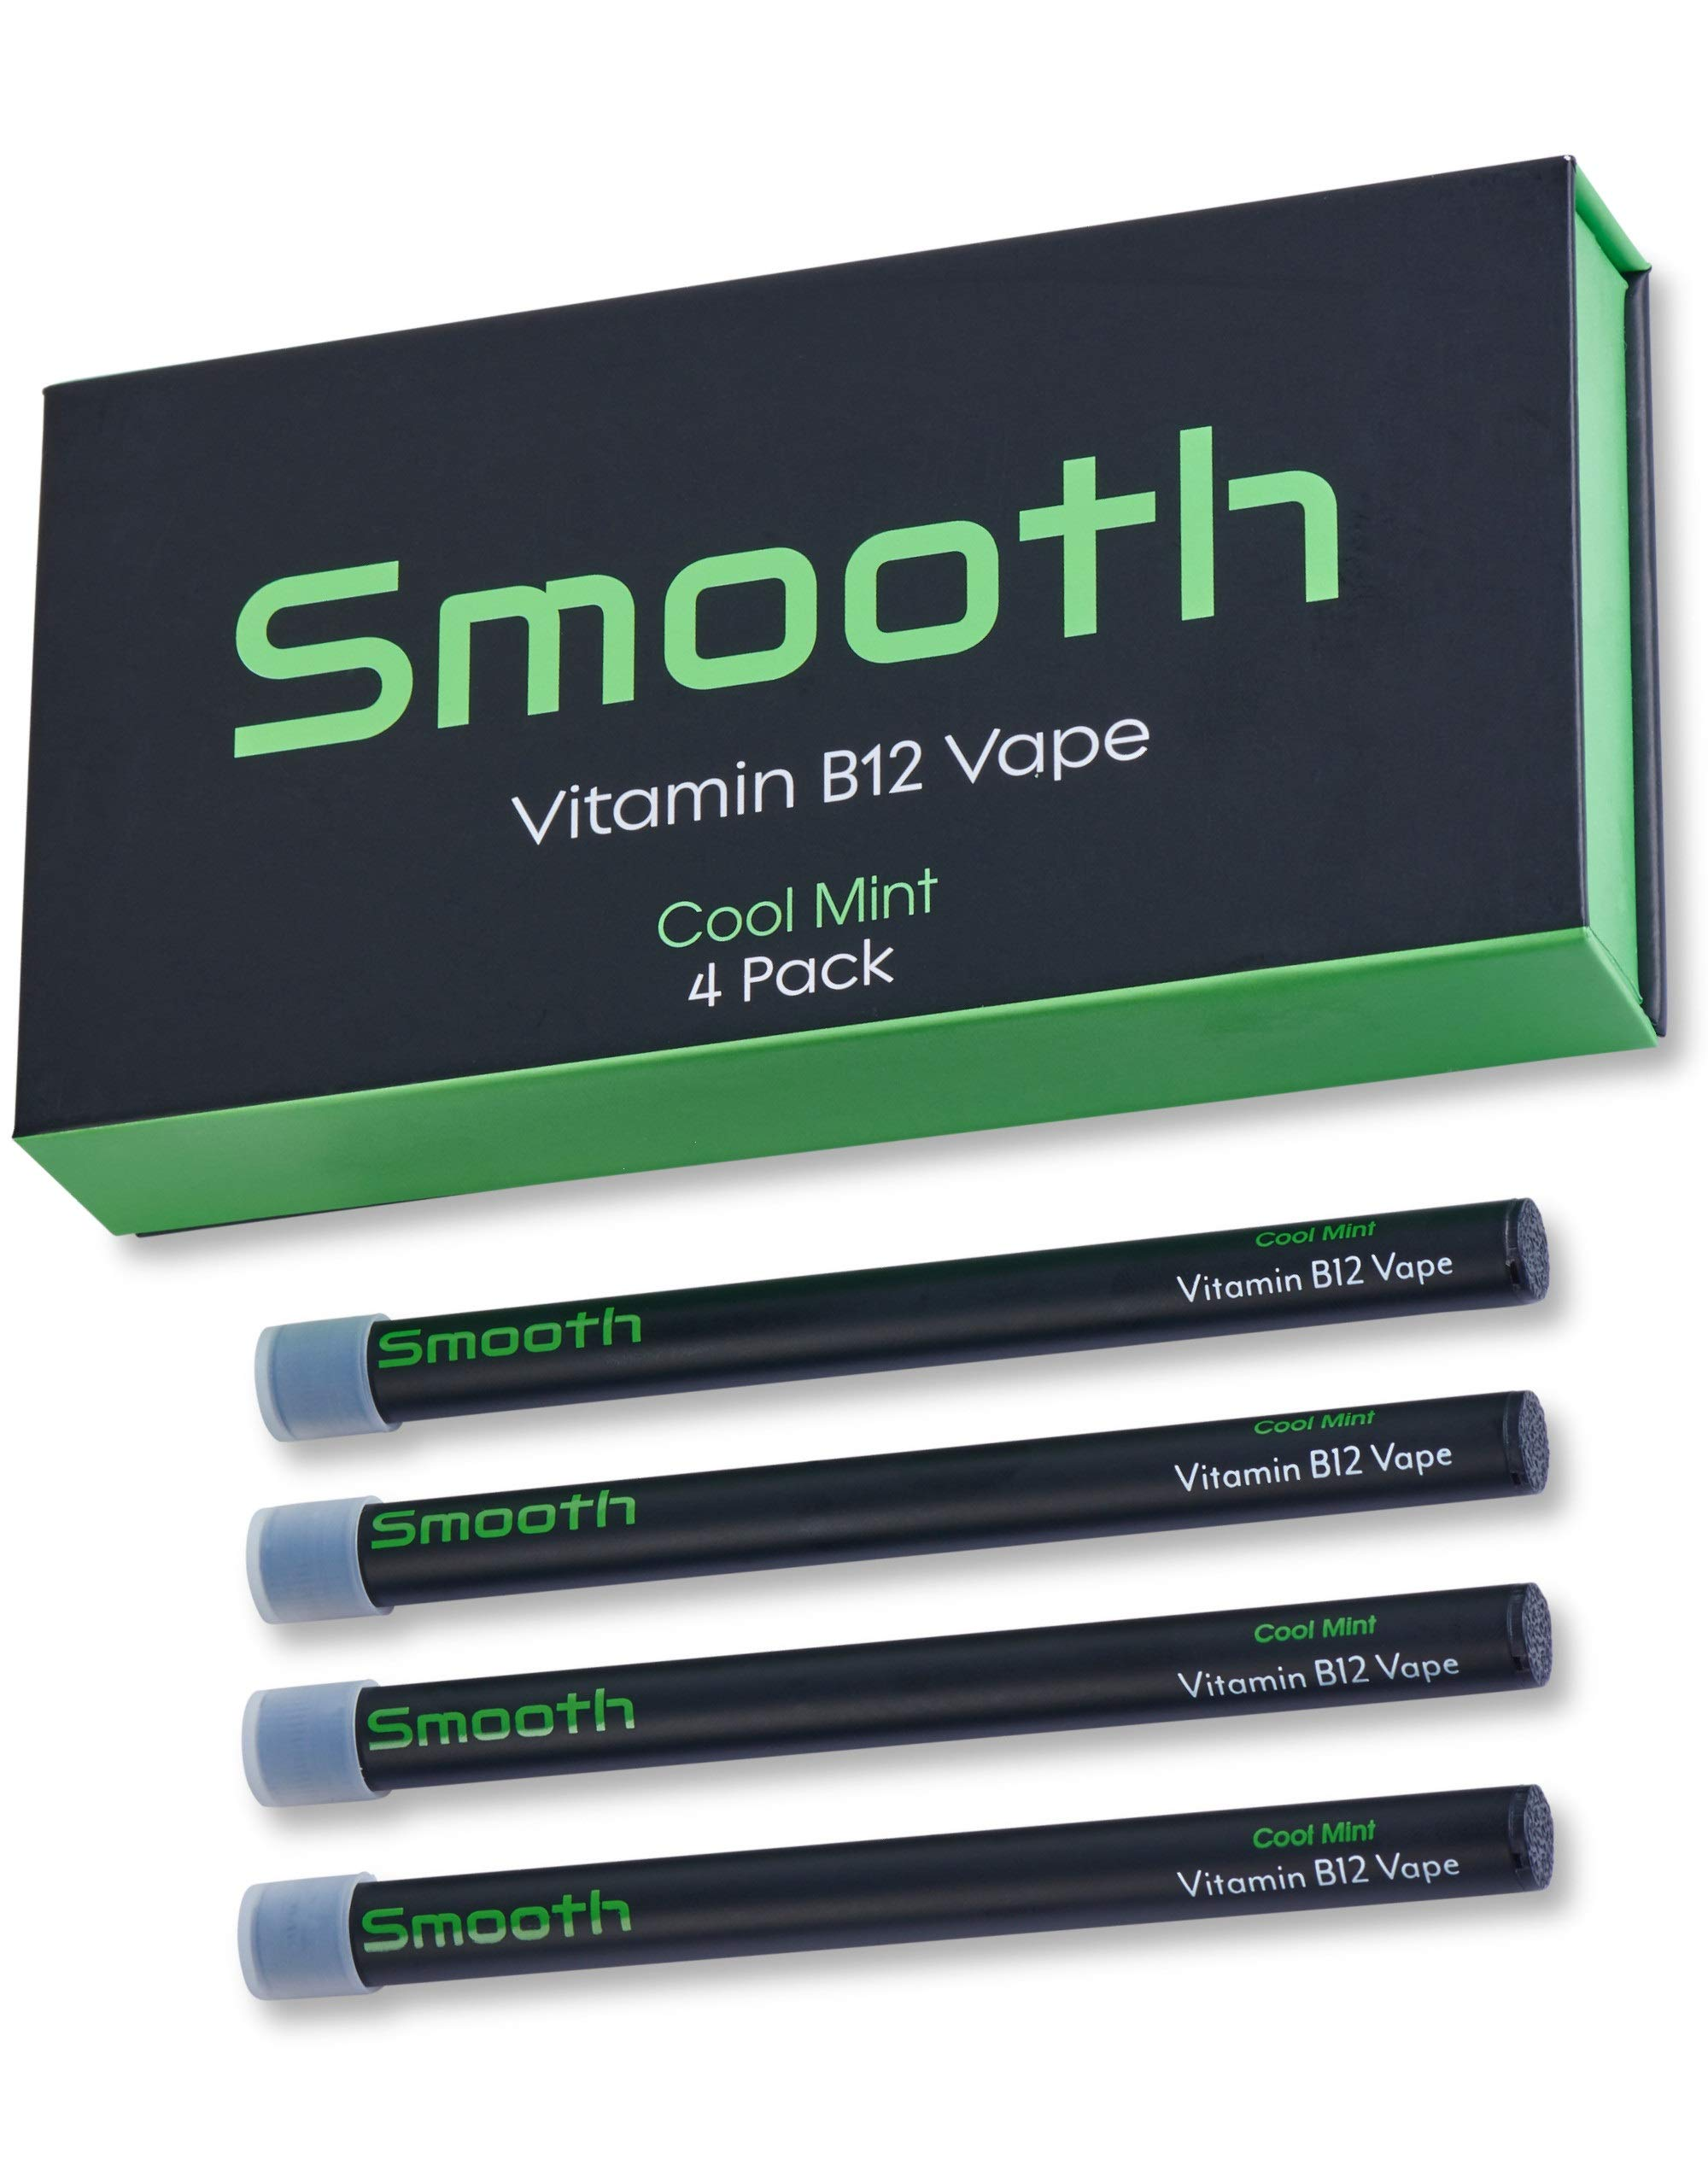 Smooth Vitamin B12 Vape for Energy: All Natural, Vegan-Friendly Vitamin B12 Inhalable Aromatherapy | Great Taste, No Calories, Nicotine Free | Cool Mint Flavor (4 Pack) by Smooth B12 Vape